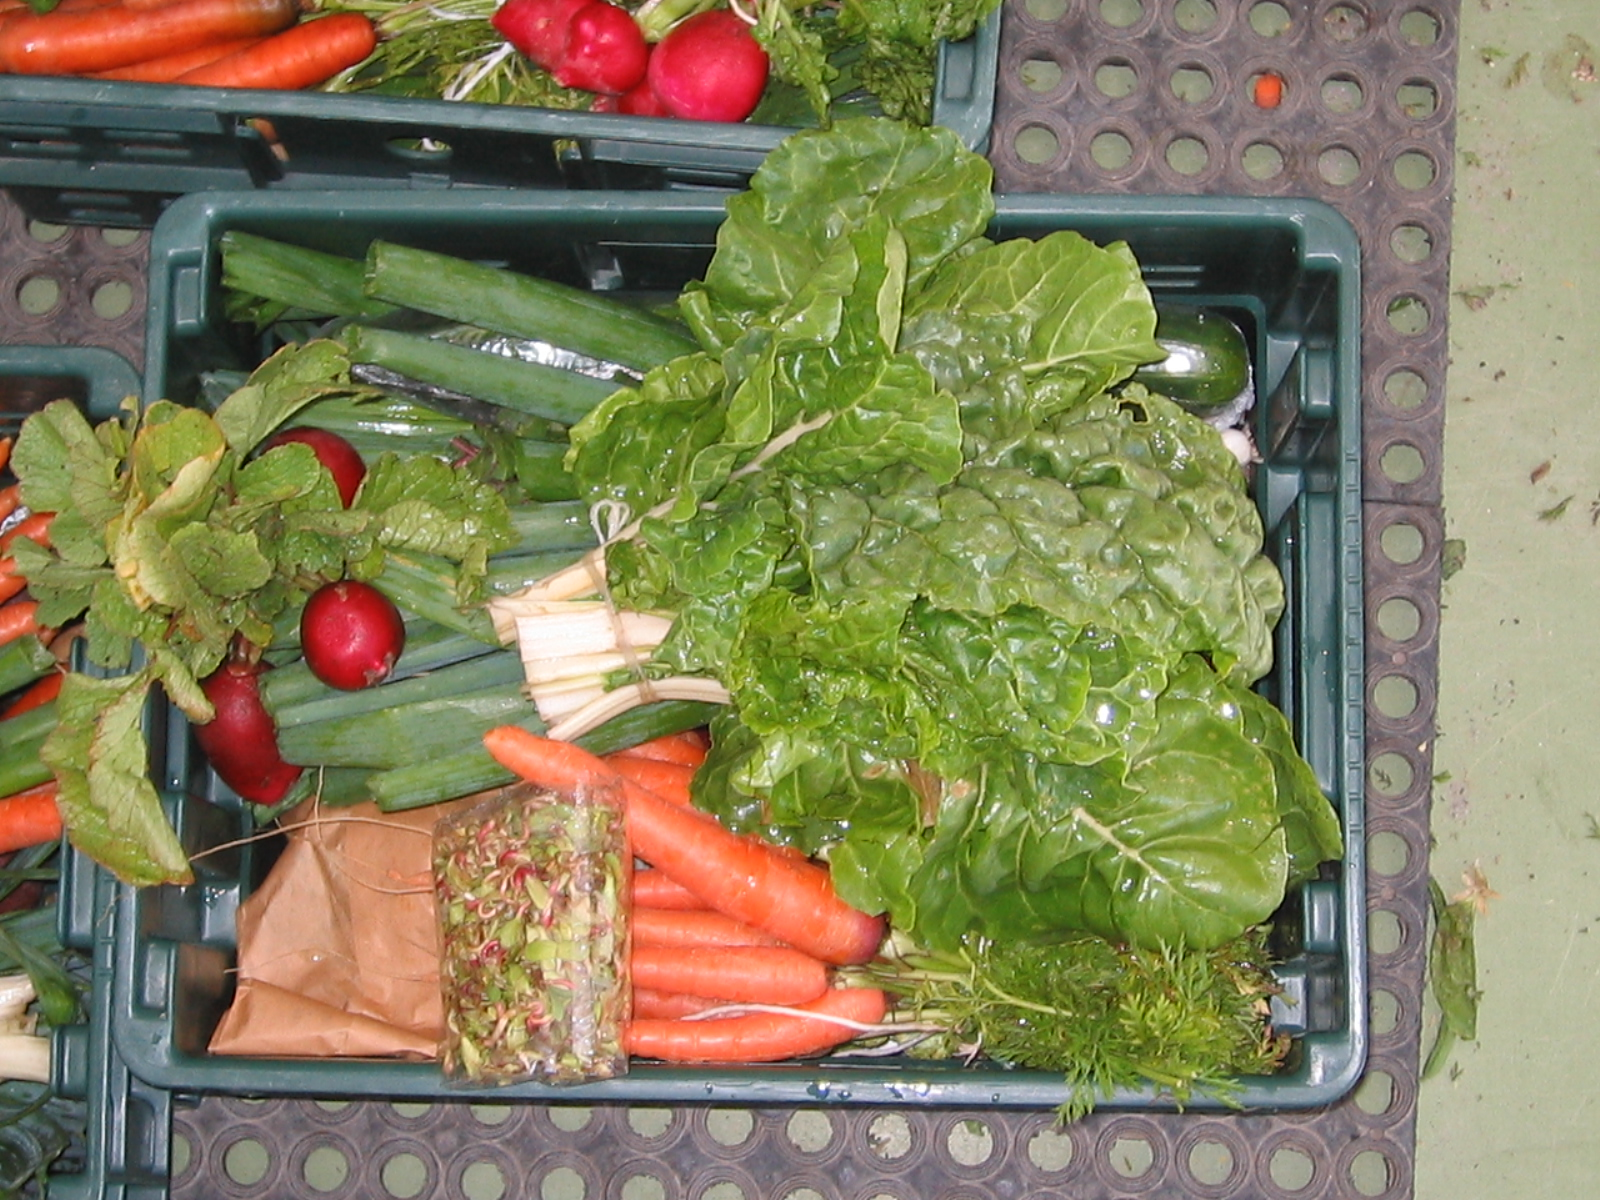 A box of organic veggies ready for delivery